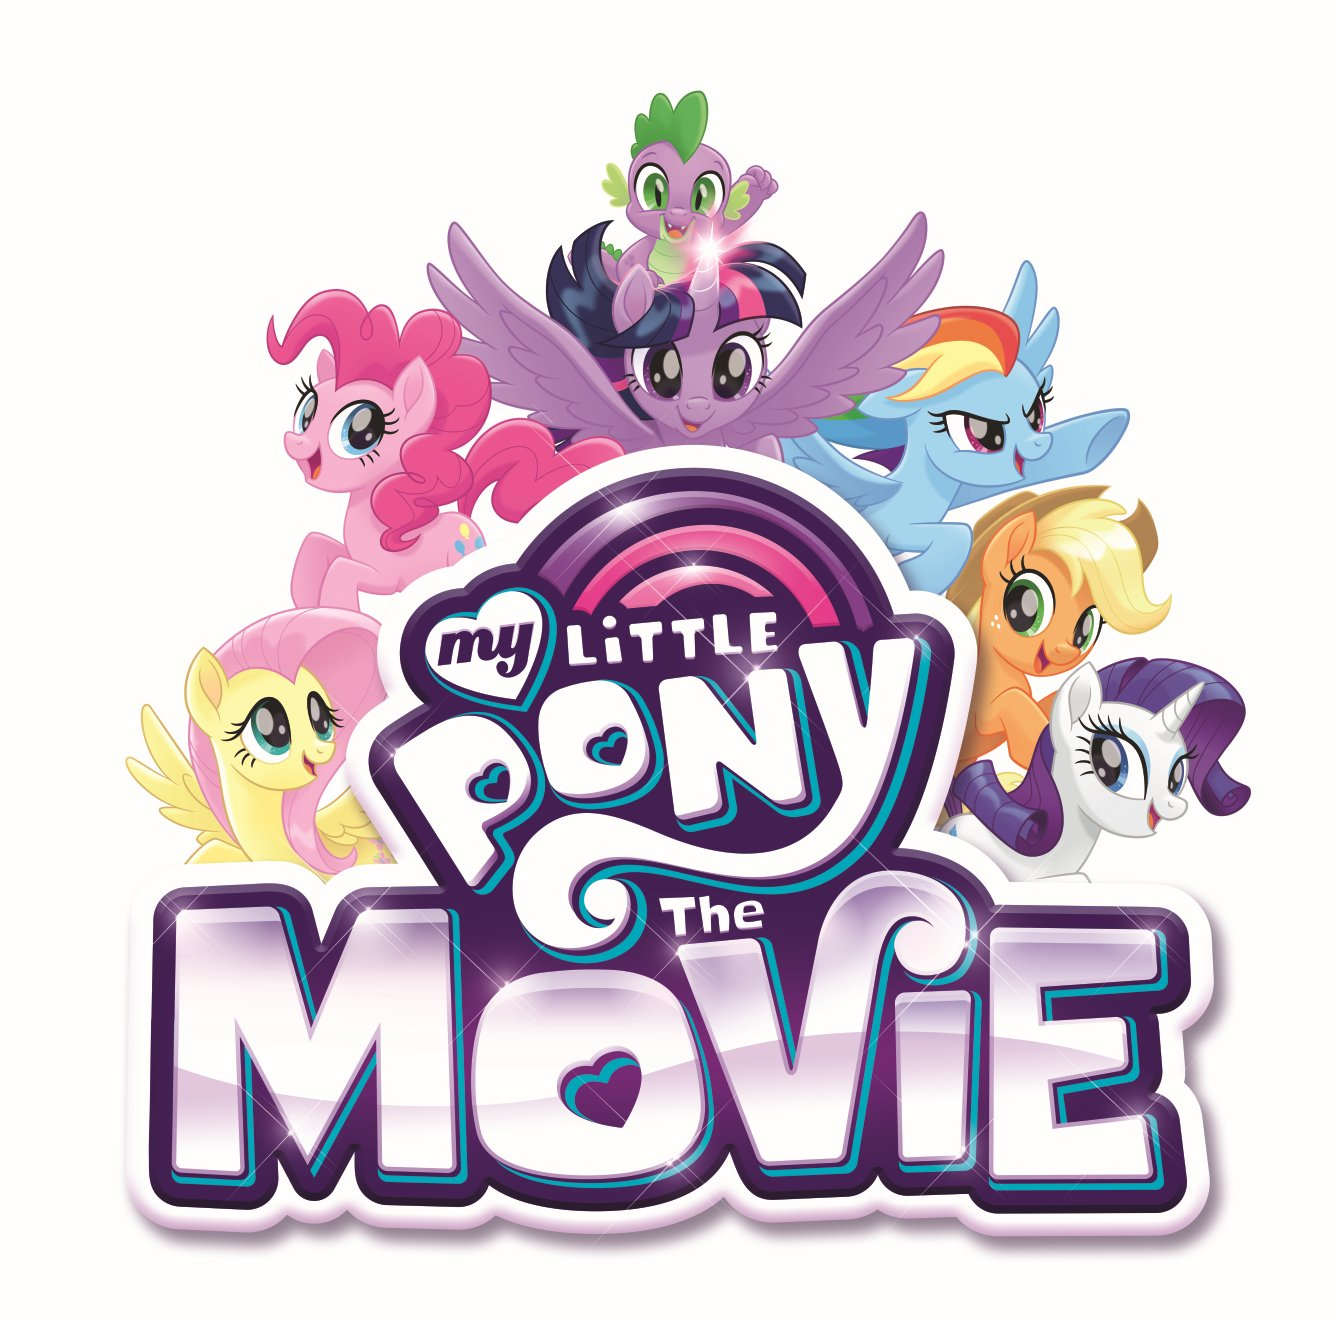 My Little Pony Movie Picture